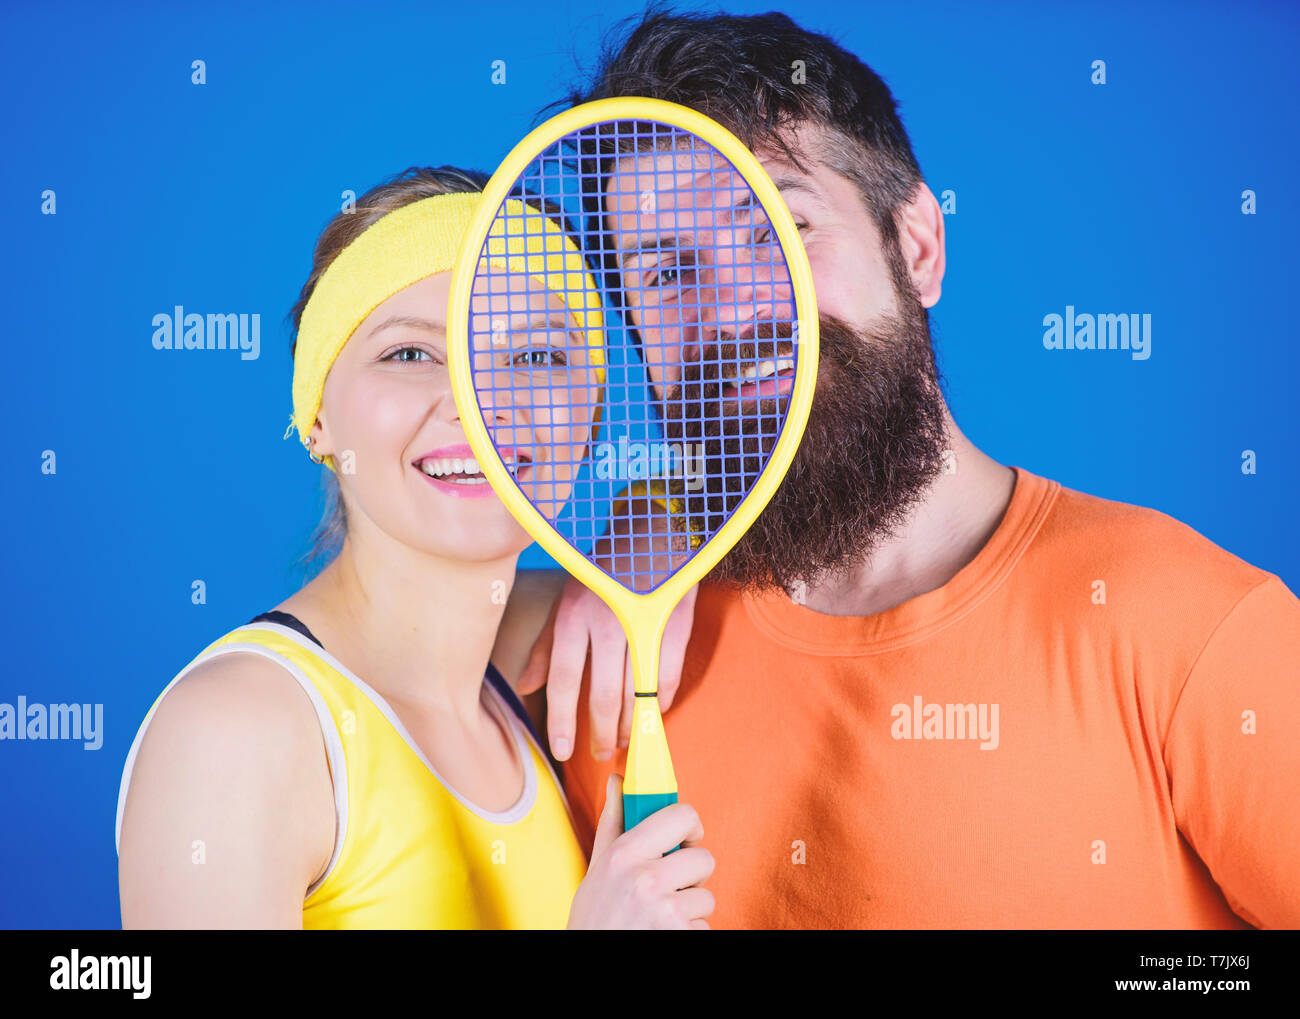 We are one. Athletic Success. Sport equipment. Happy woman and bearded man workout in gym. Strong body muscles. Sporty couple train with tennis racket. We know how to score. happy to train together. - Stock Image